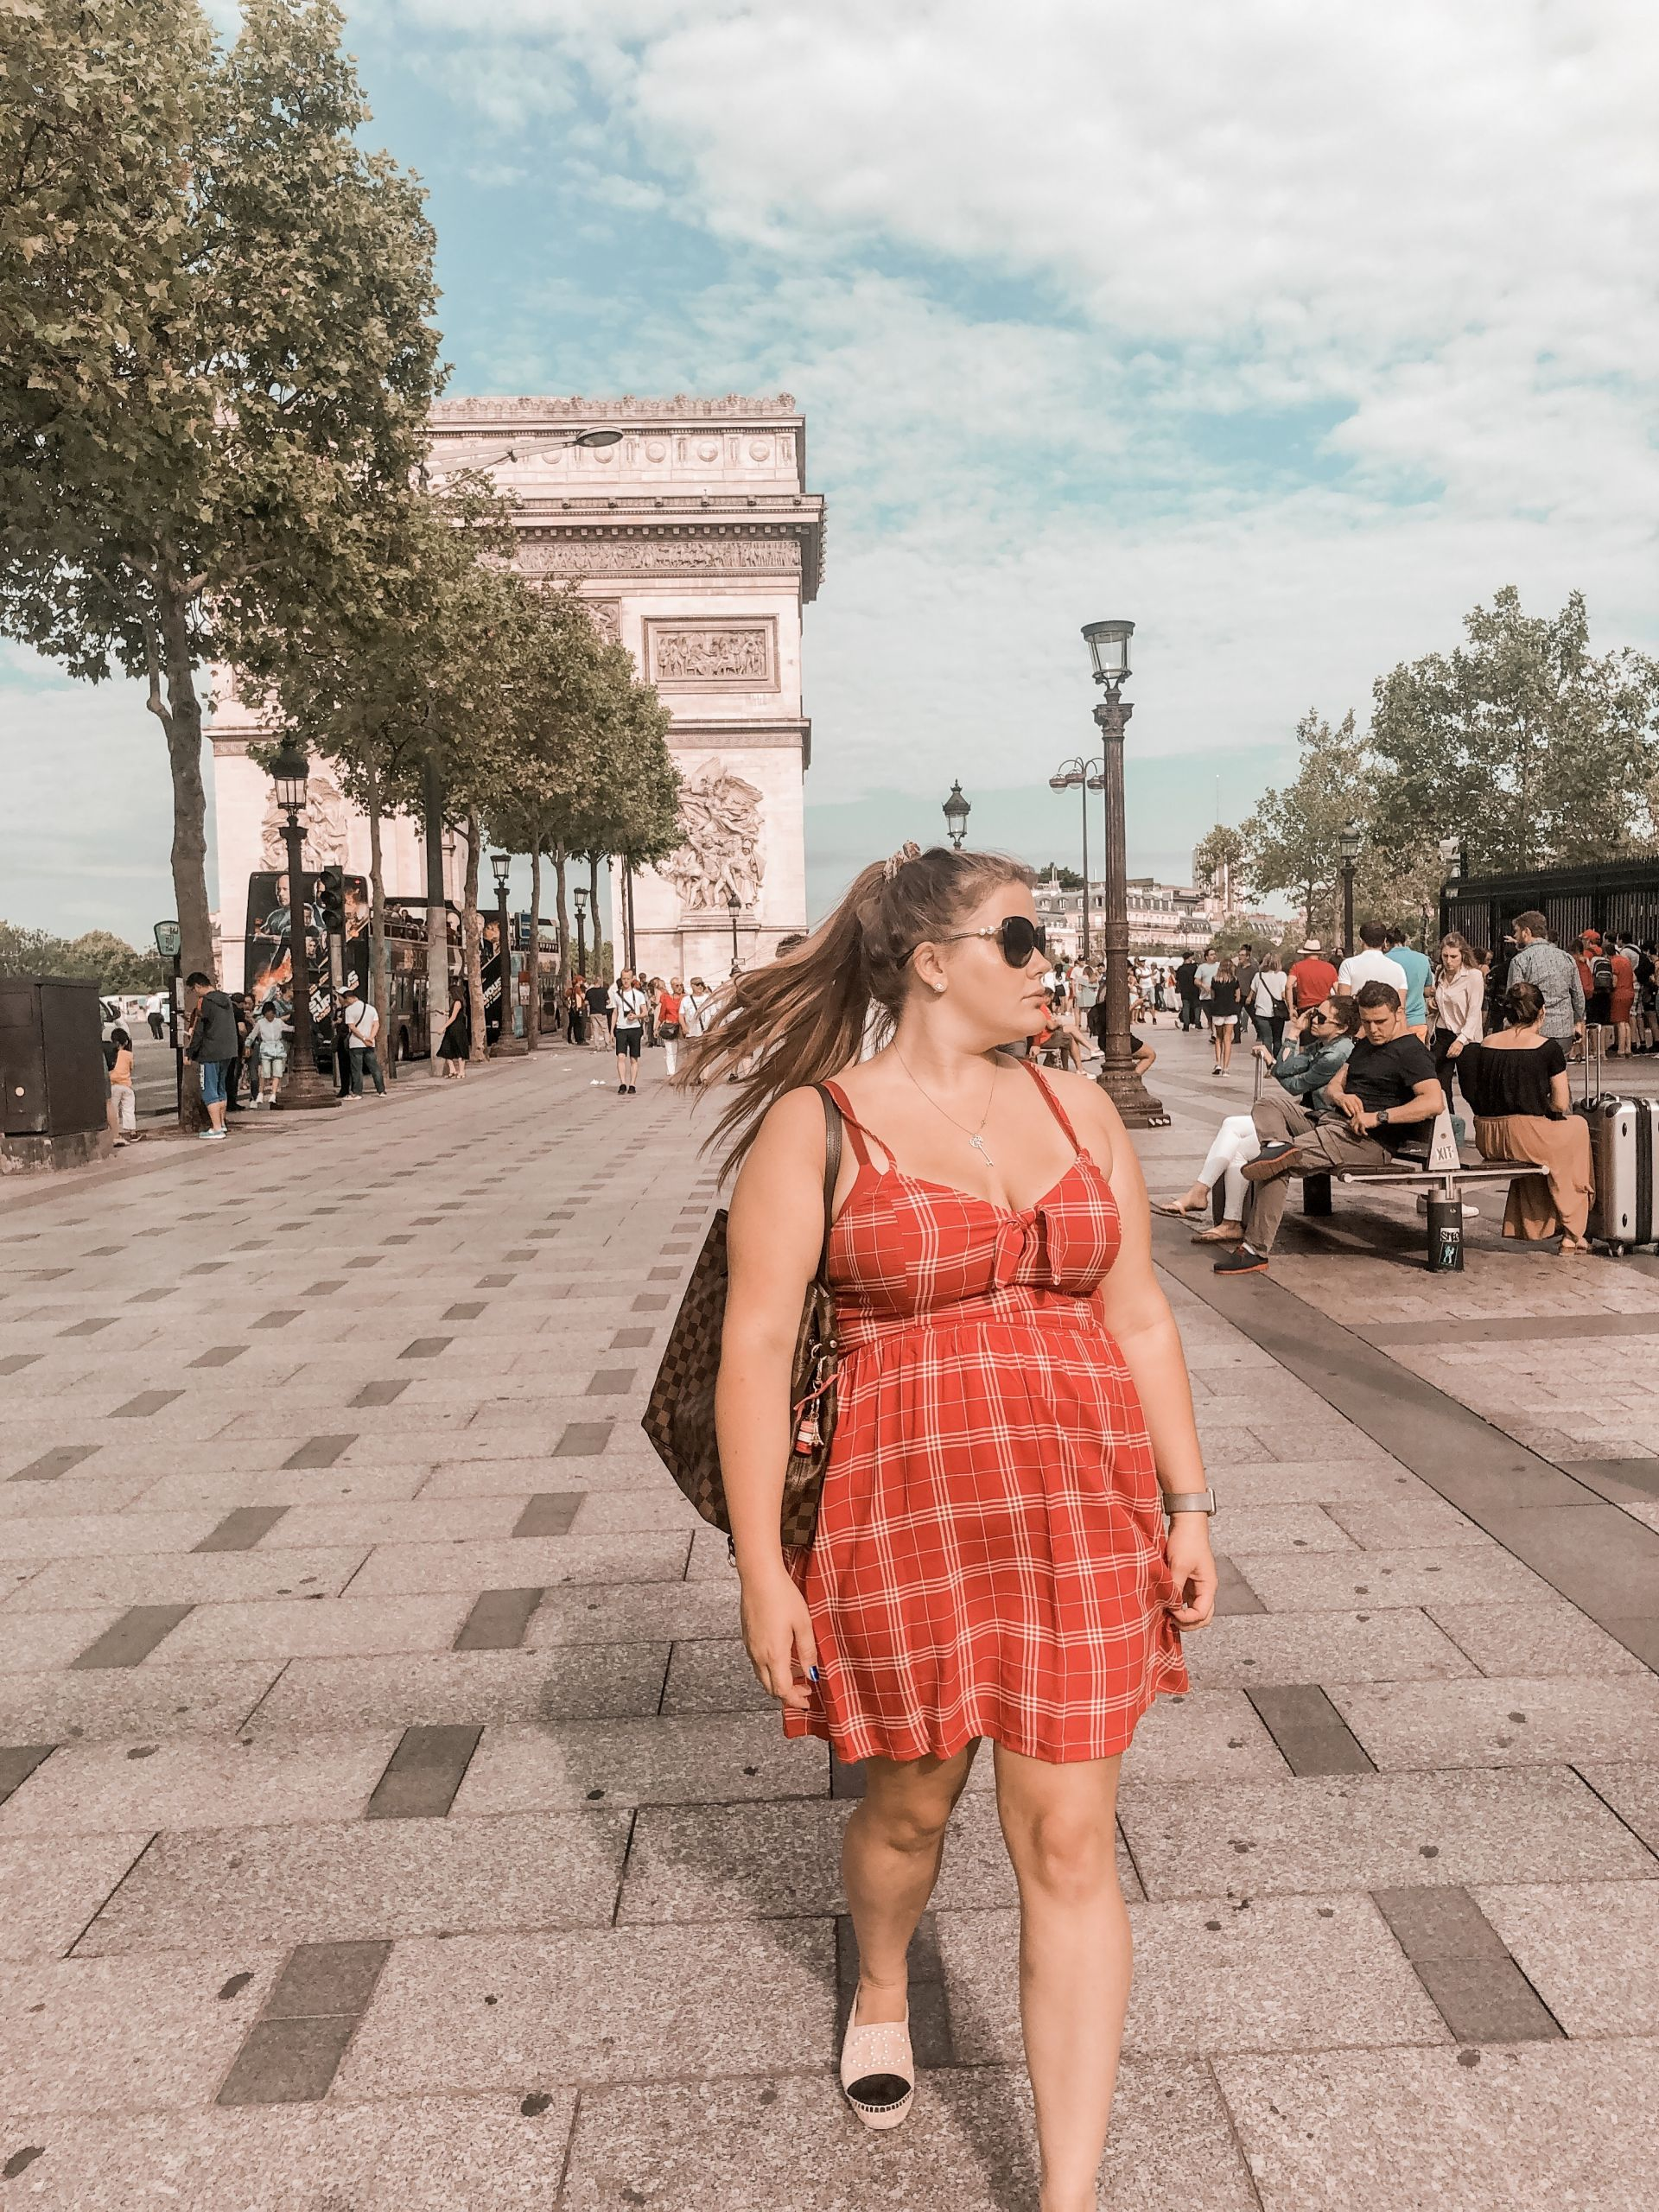 Triumphbogen-Kleid-Rot-Paris-travelguide